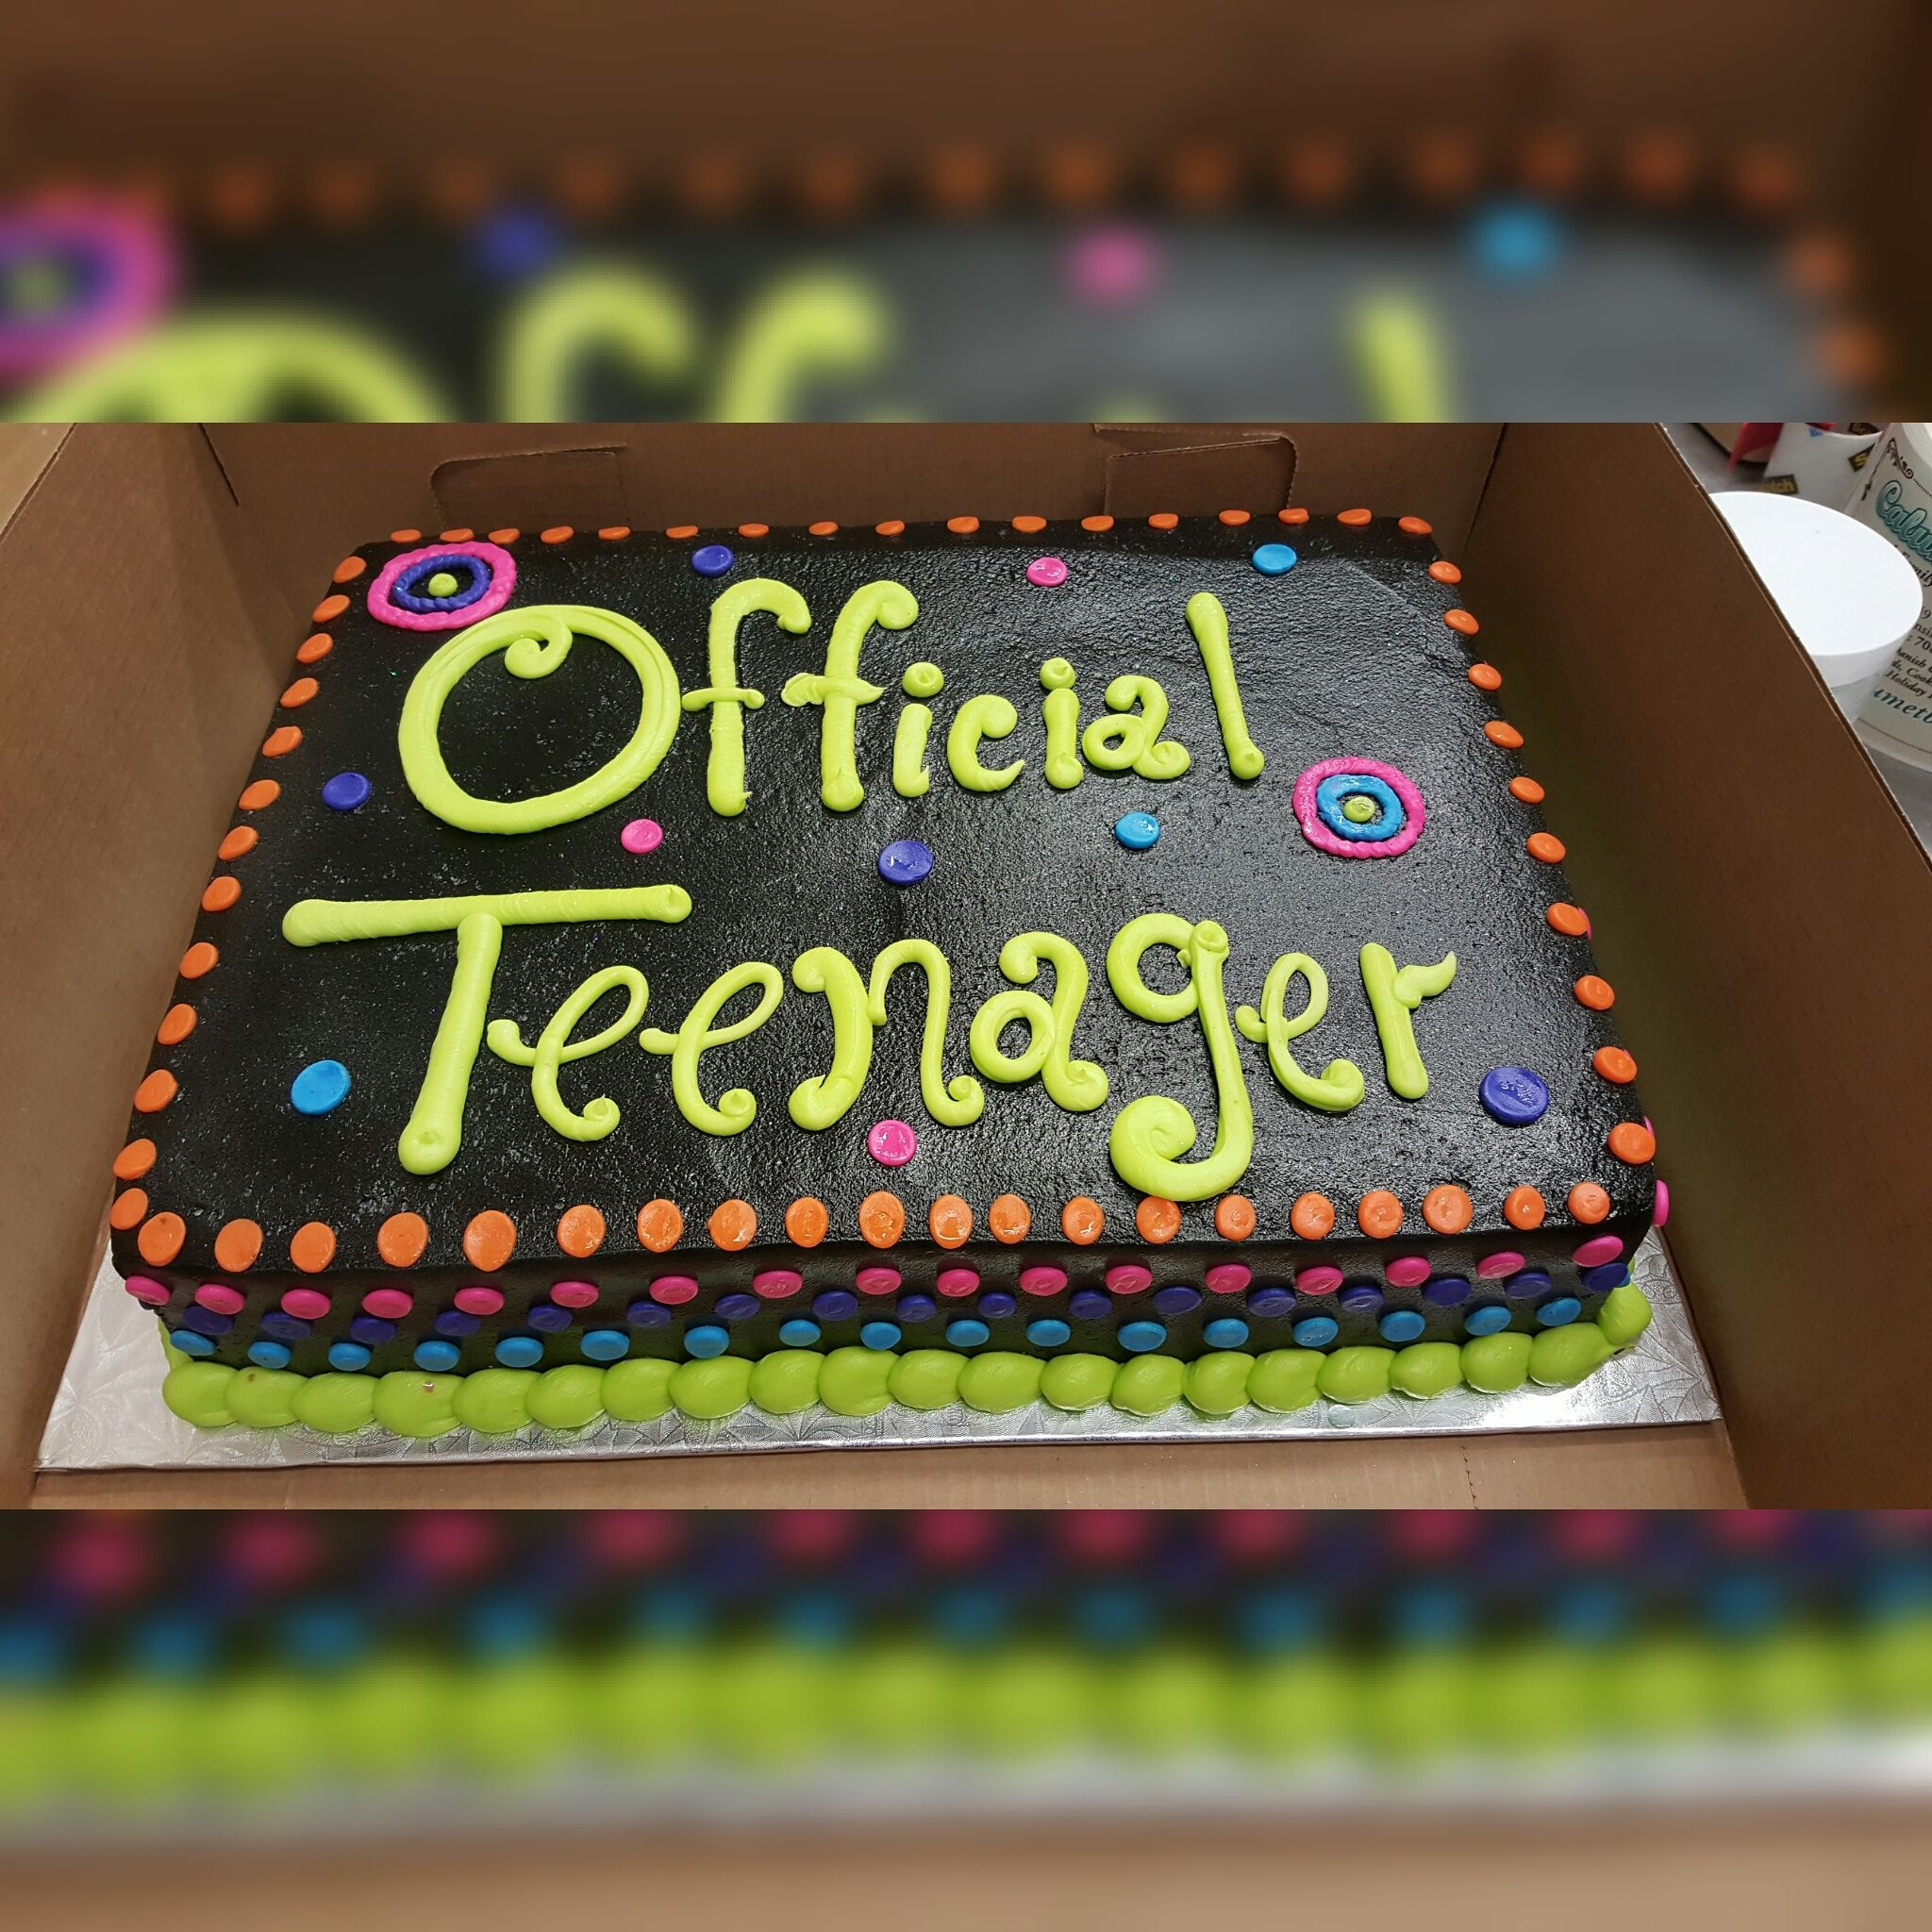 Calumet Bakery Official Teenager Cake Milestone Birthday Cakes